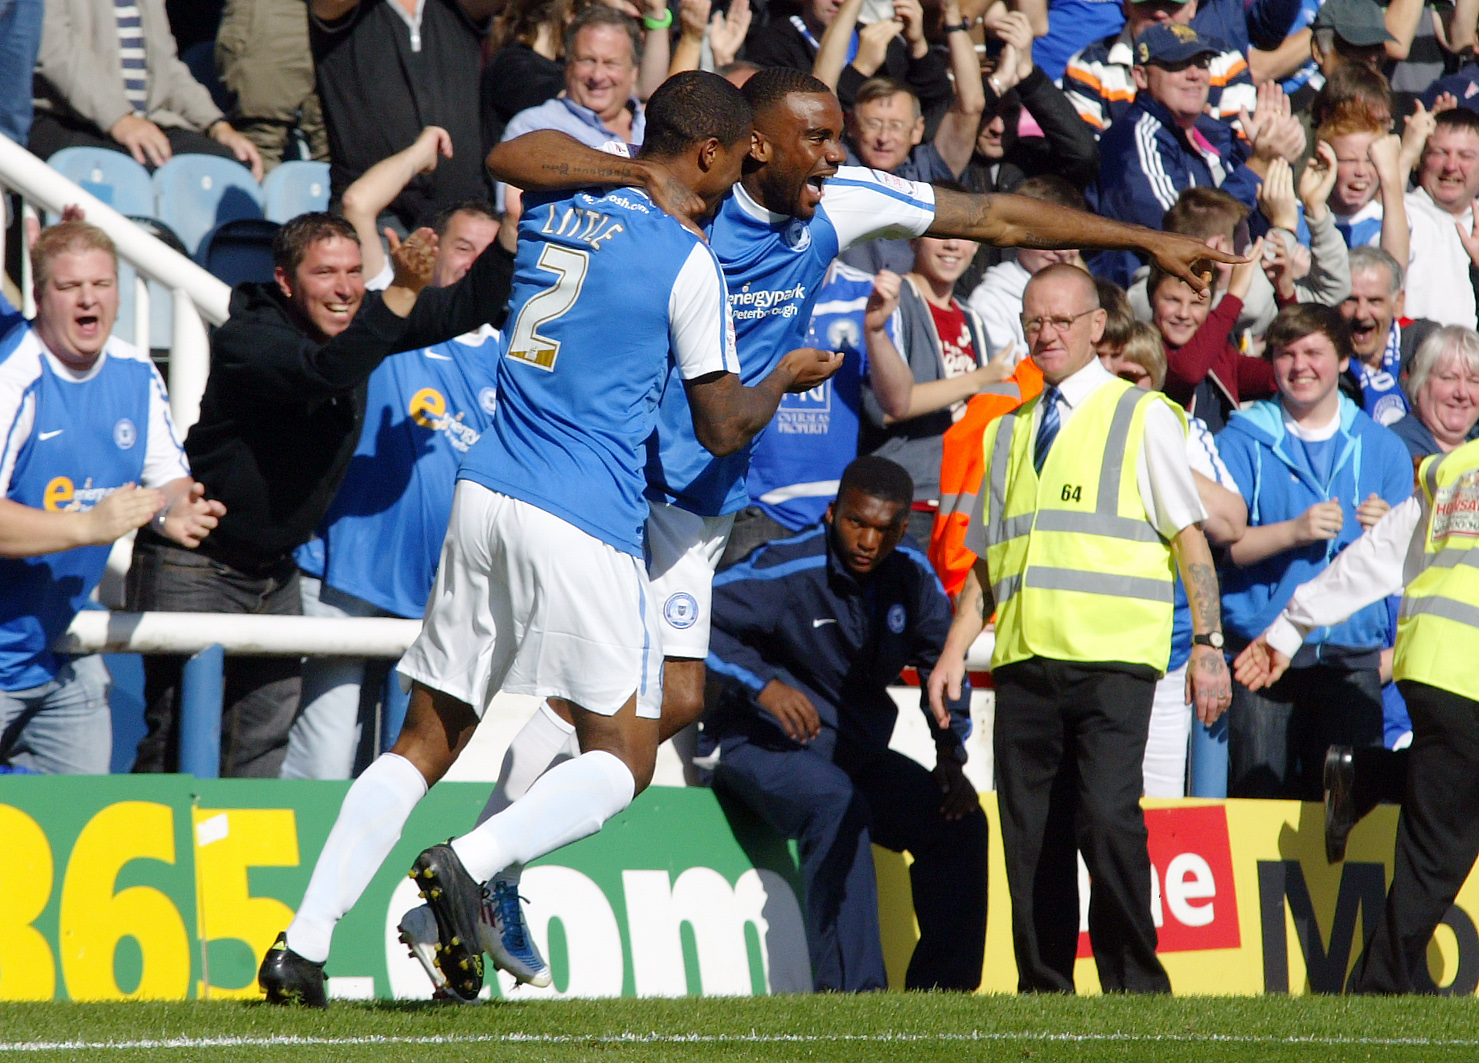 Emile sinclair celebrates his first goal - Peterborough United vs. Burnley - 17/09/11